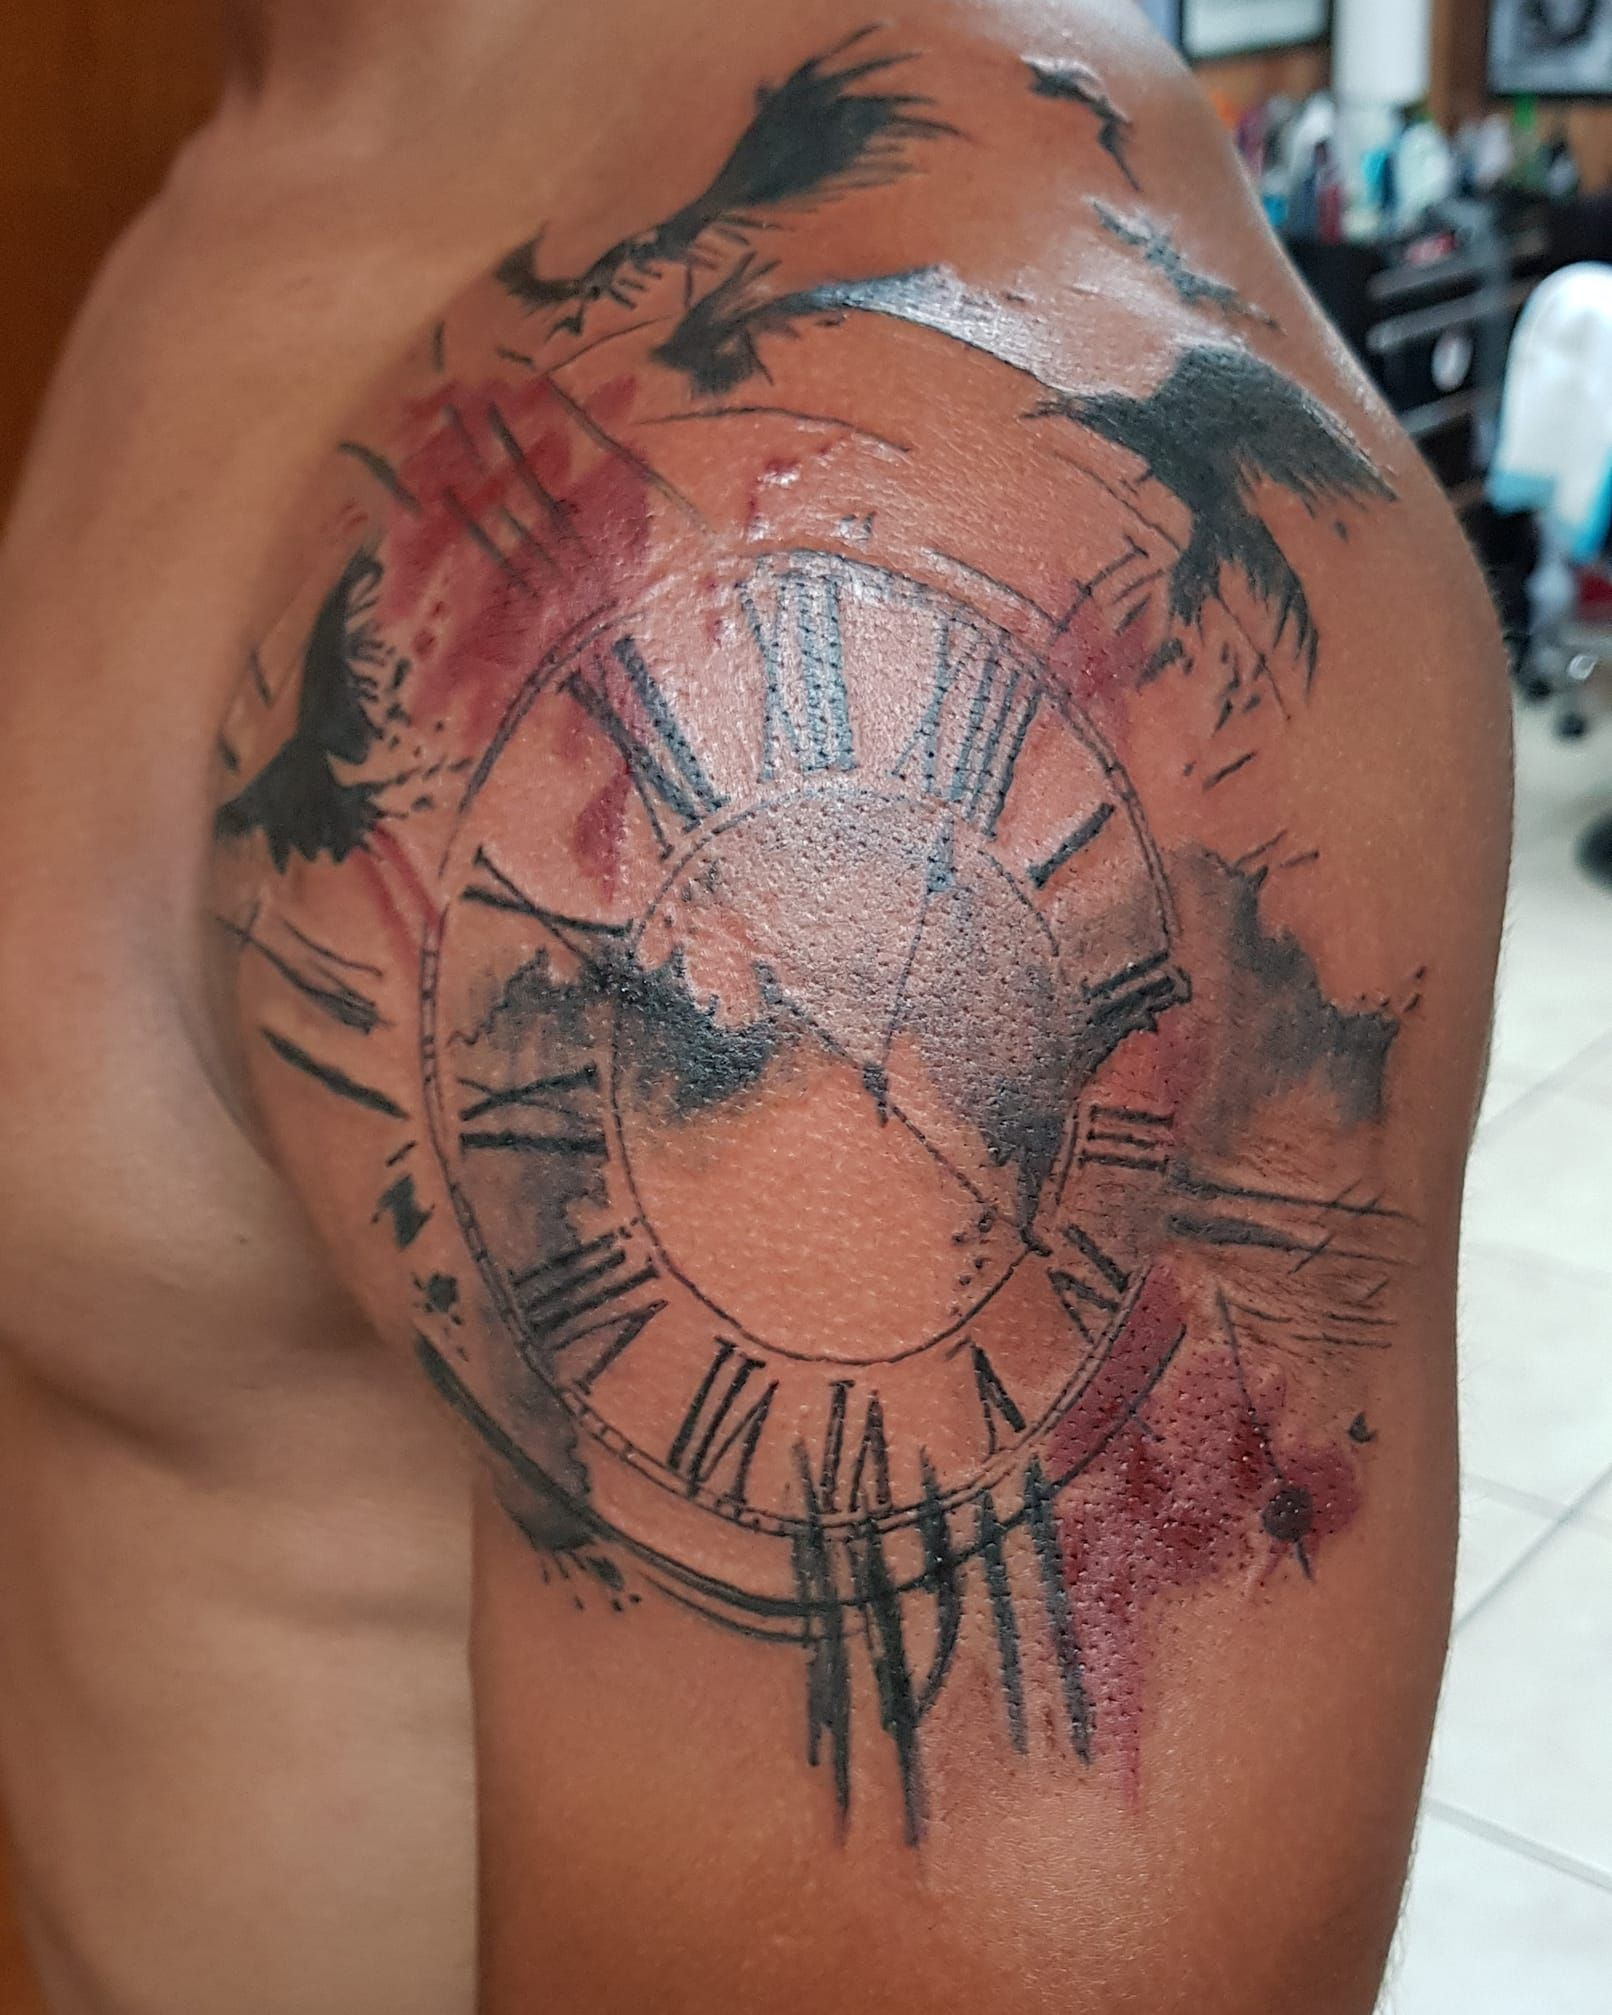 b8a0254e0dff4 Balinese Tattoo Miami - Tattoo studio in Miami | Best tattoos of Miami.  Custom tattoos